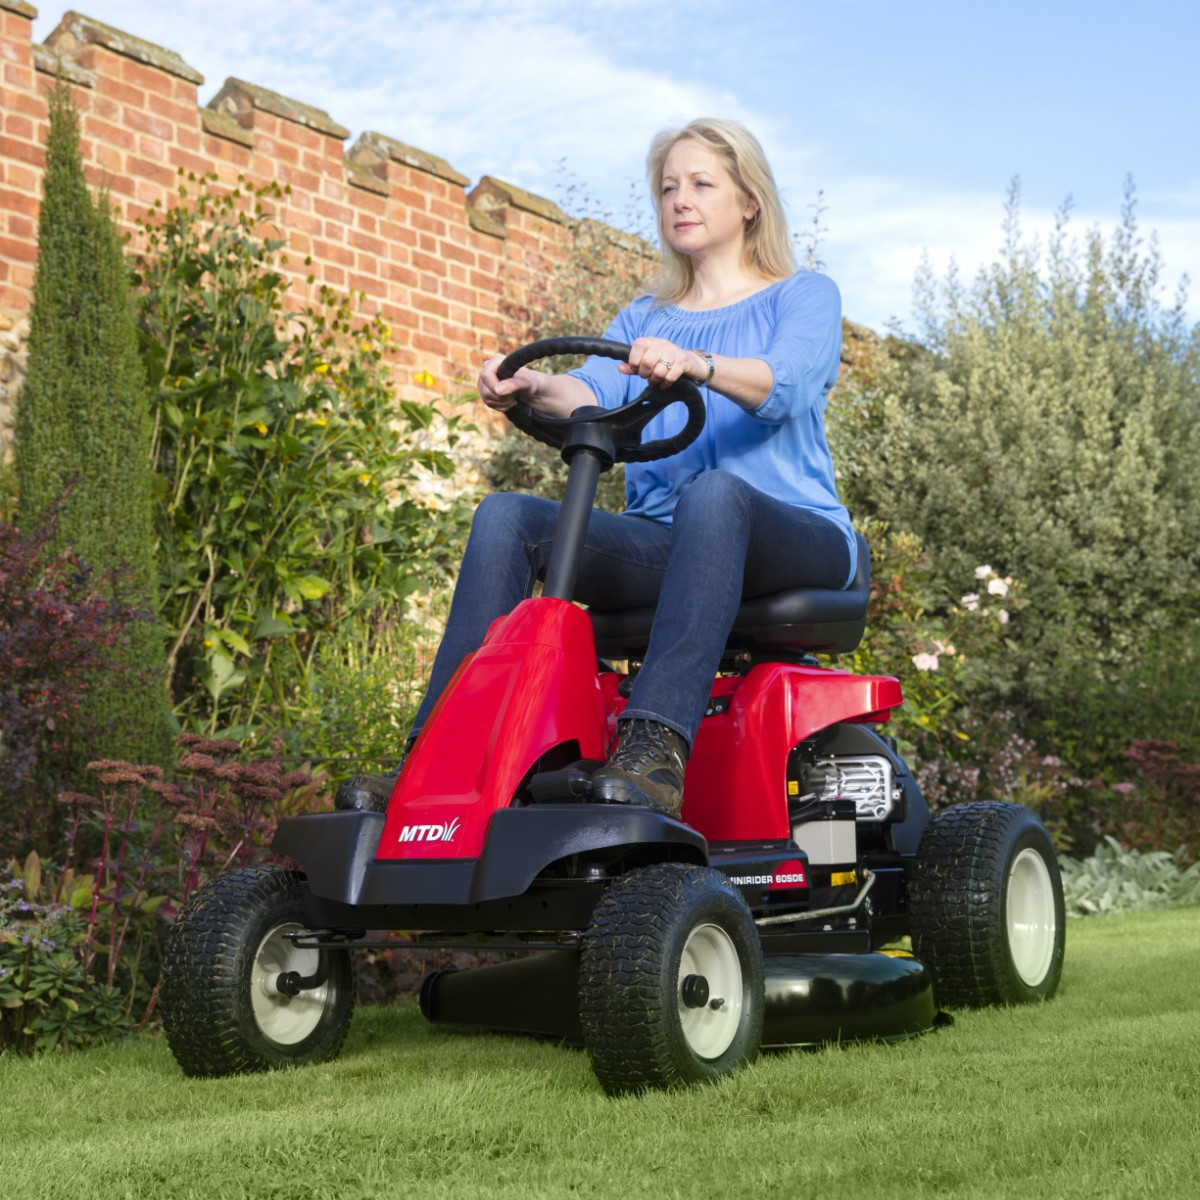 Lawnflite 2-in-1 ride-on mower